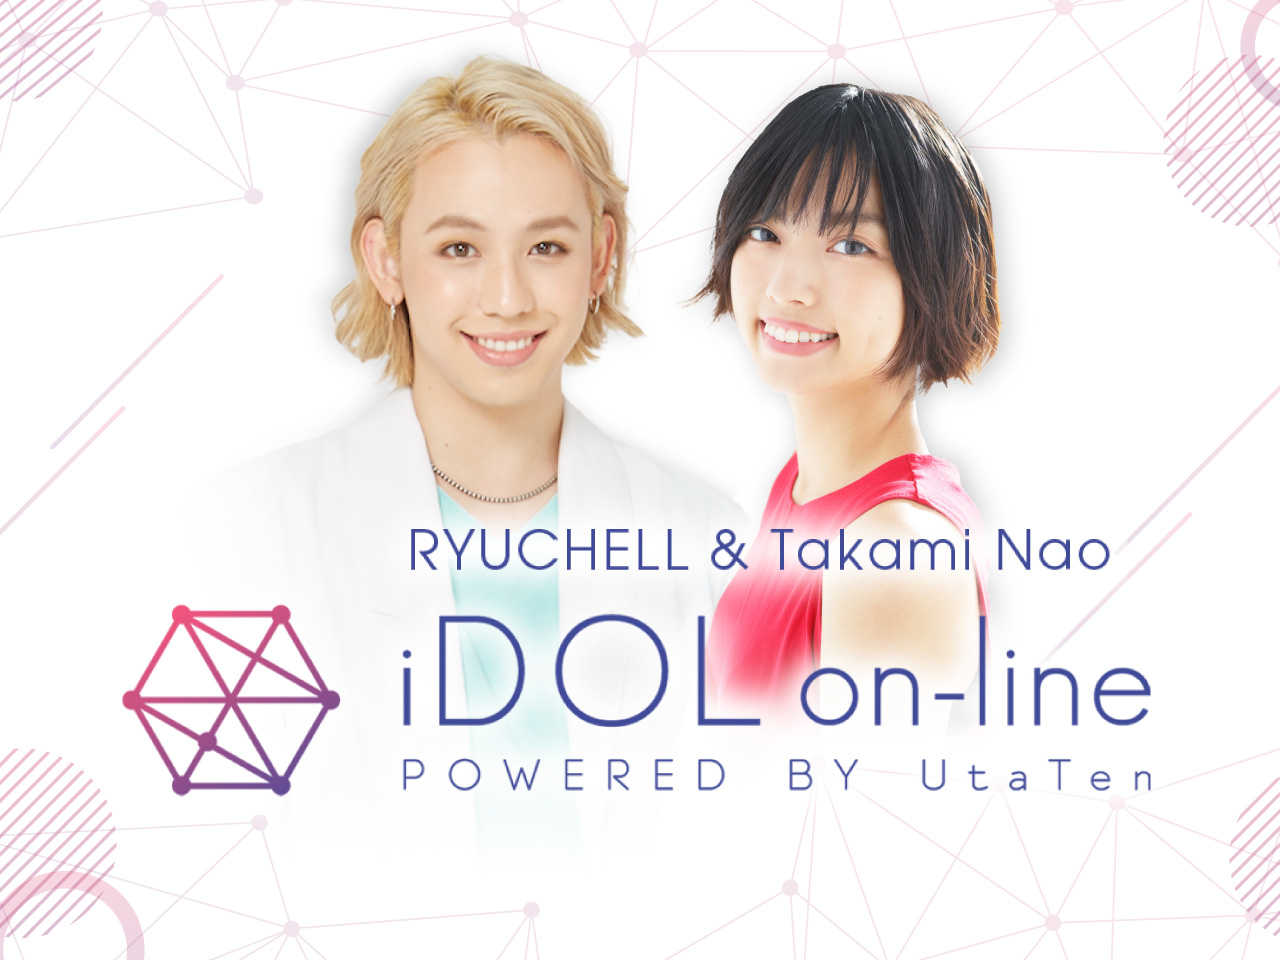 ShibuyaCross-FMにて『RYUCHELL & Takami Nao  iDOL on-line !』放送開始!